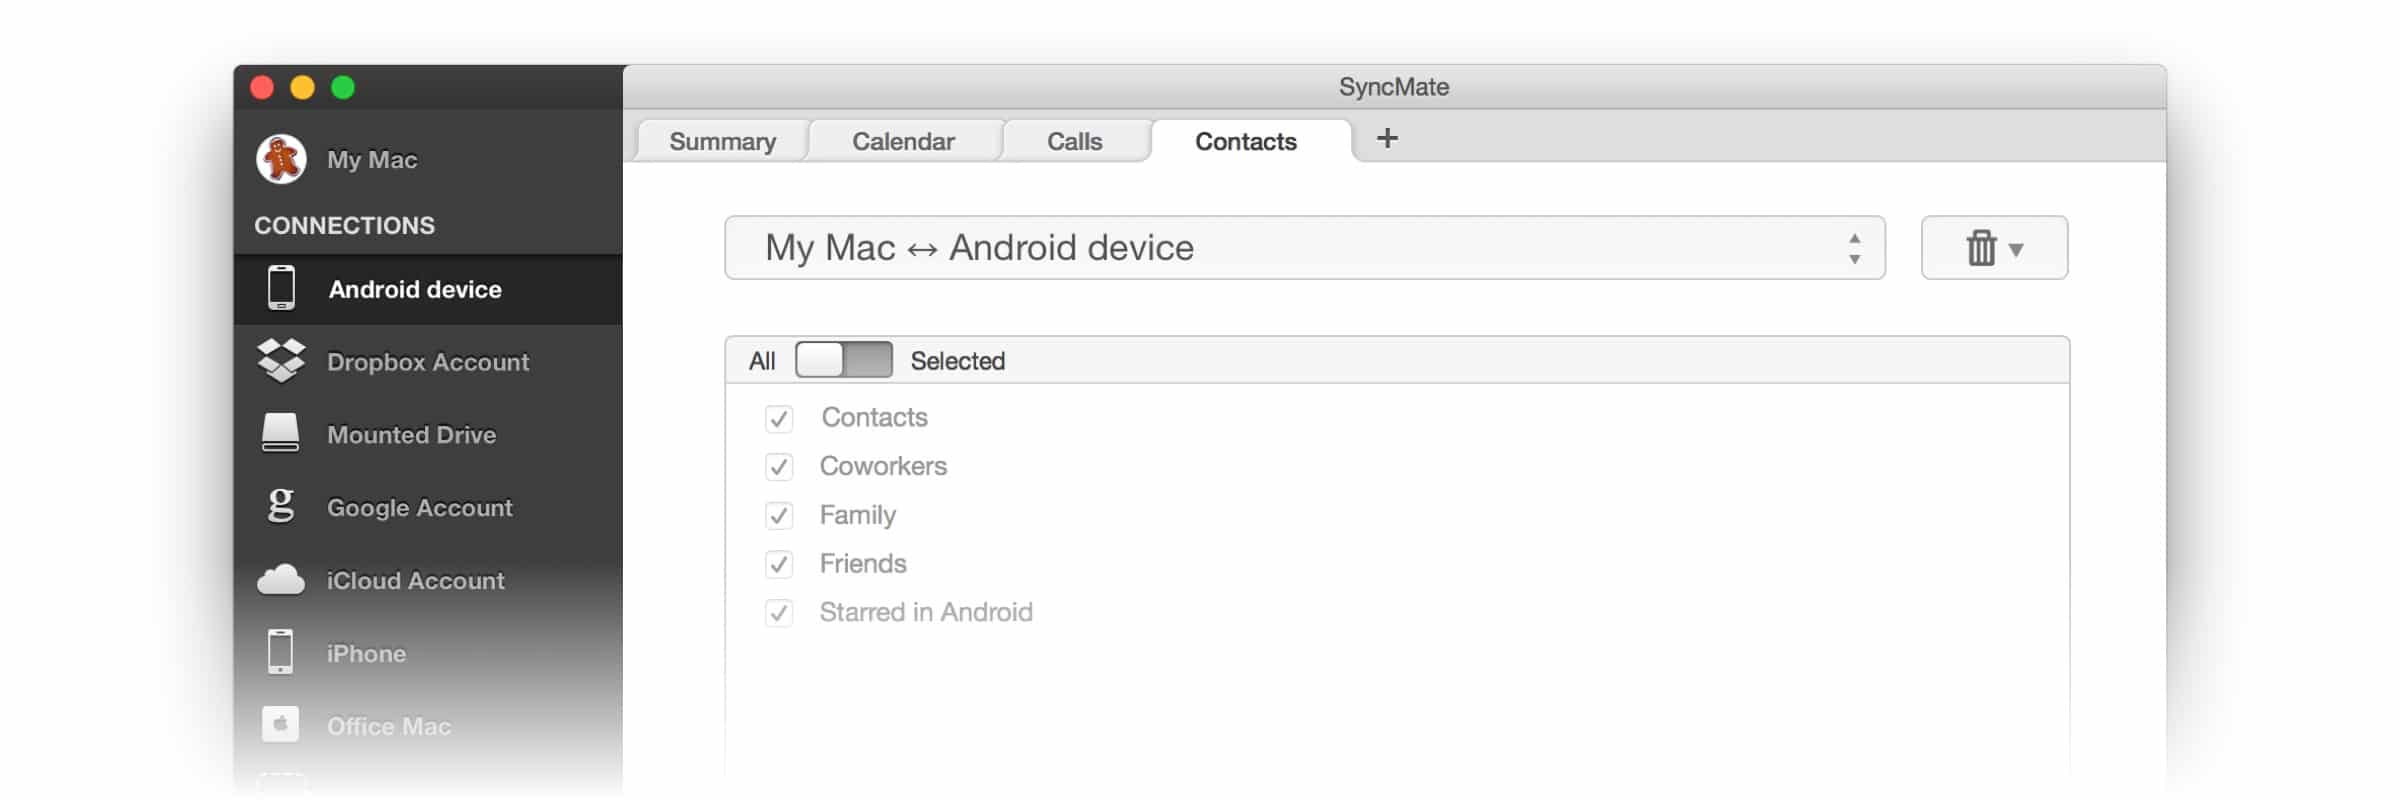 http://server.digimetriq.com/wp-content/uploads/2020/12/Syncmate-Review-Easily-Sync-Android-to-iPhone.jpg